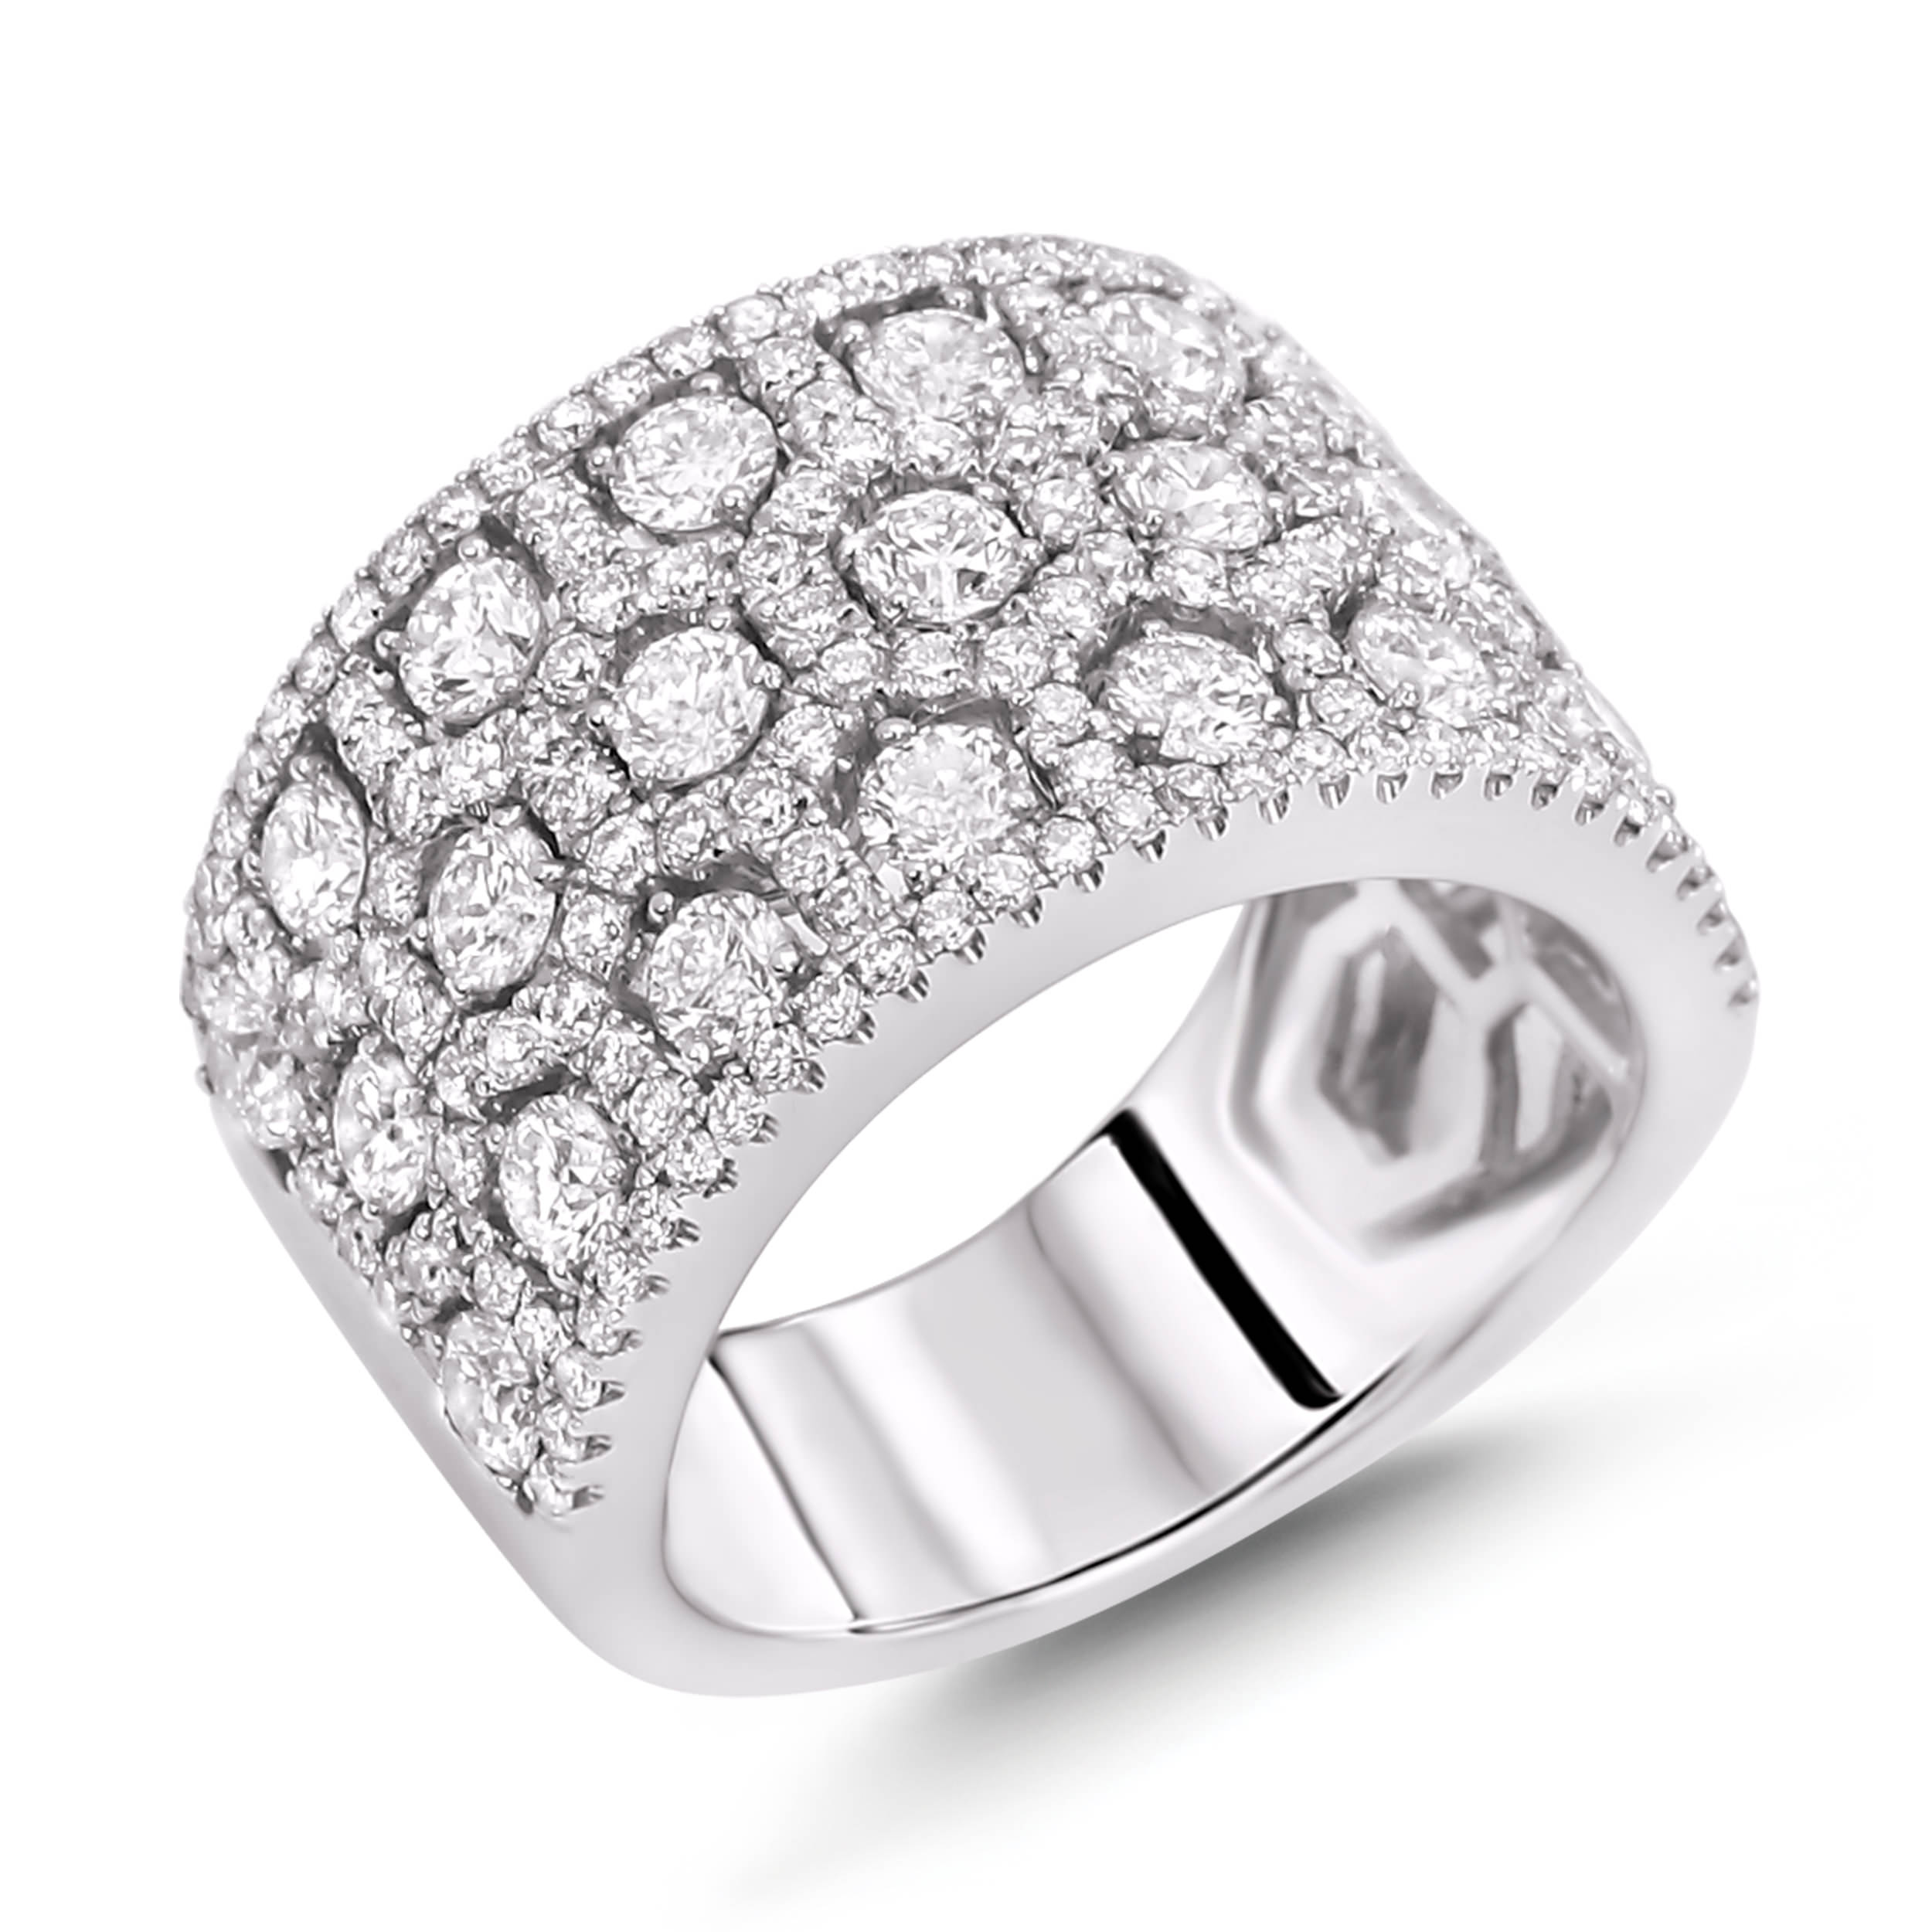 jewellery gent diamond s rings details collection product fine anaya